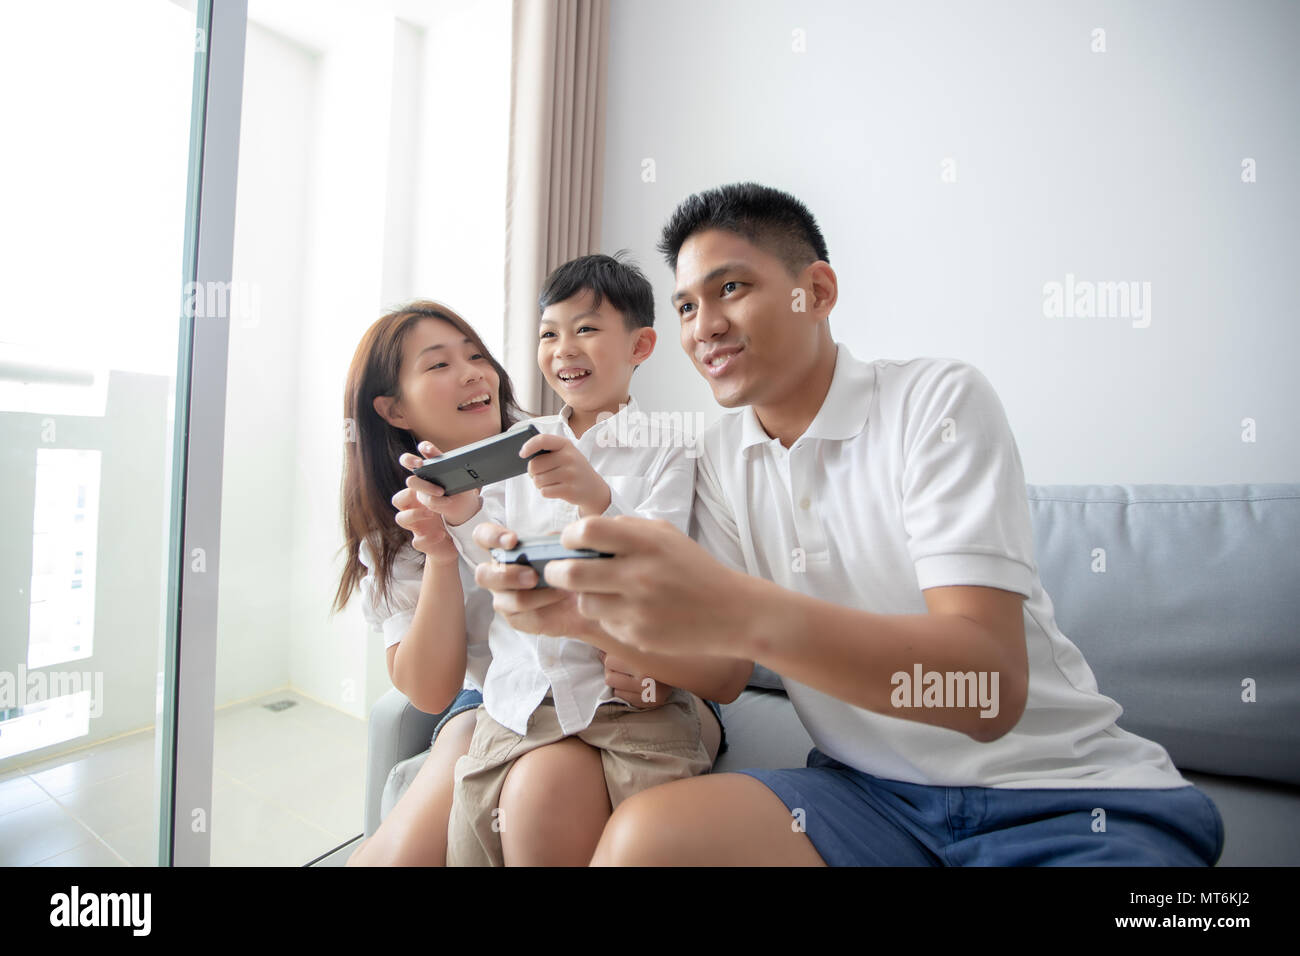 Asian family having fun playing computer console games together, Father and son have the handset controllers and the mother is cheering the players. Stock Photo